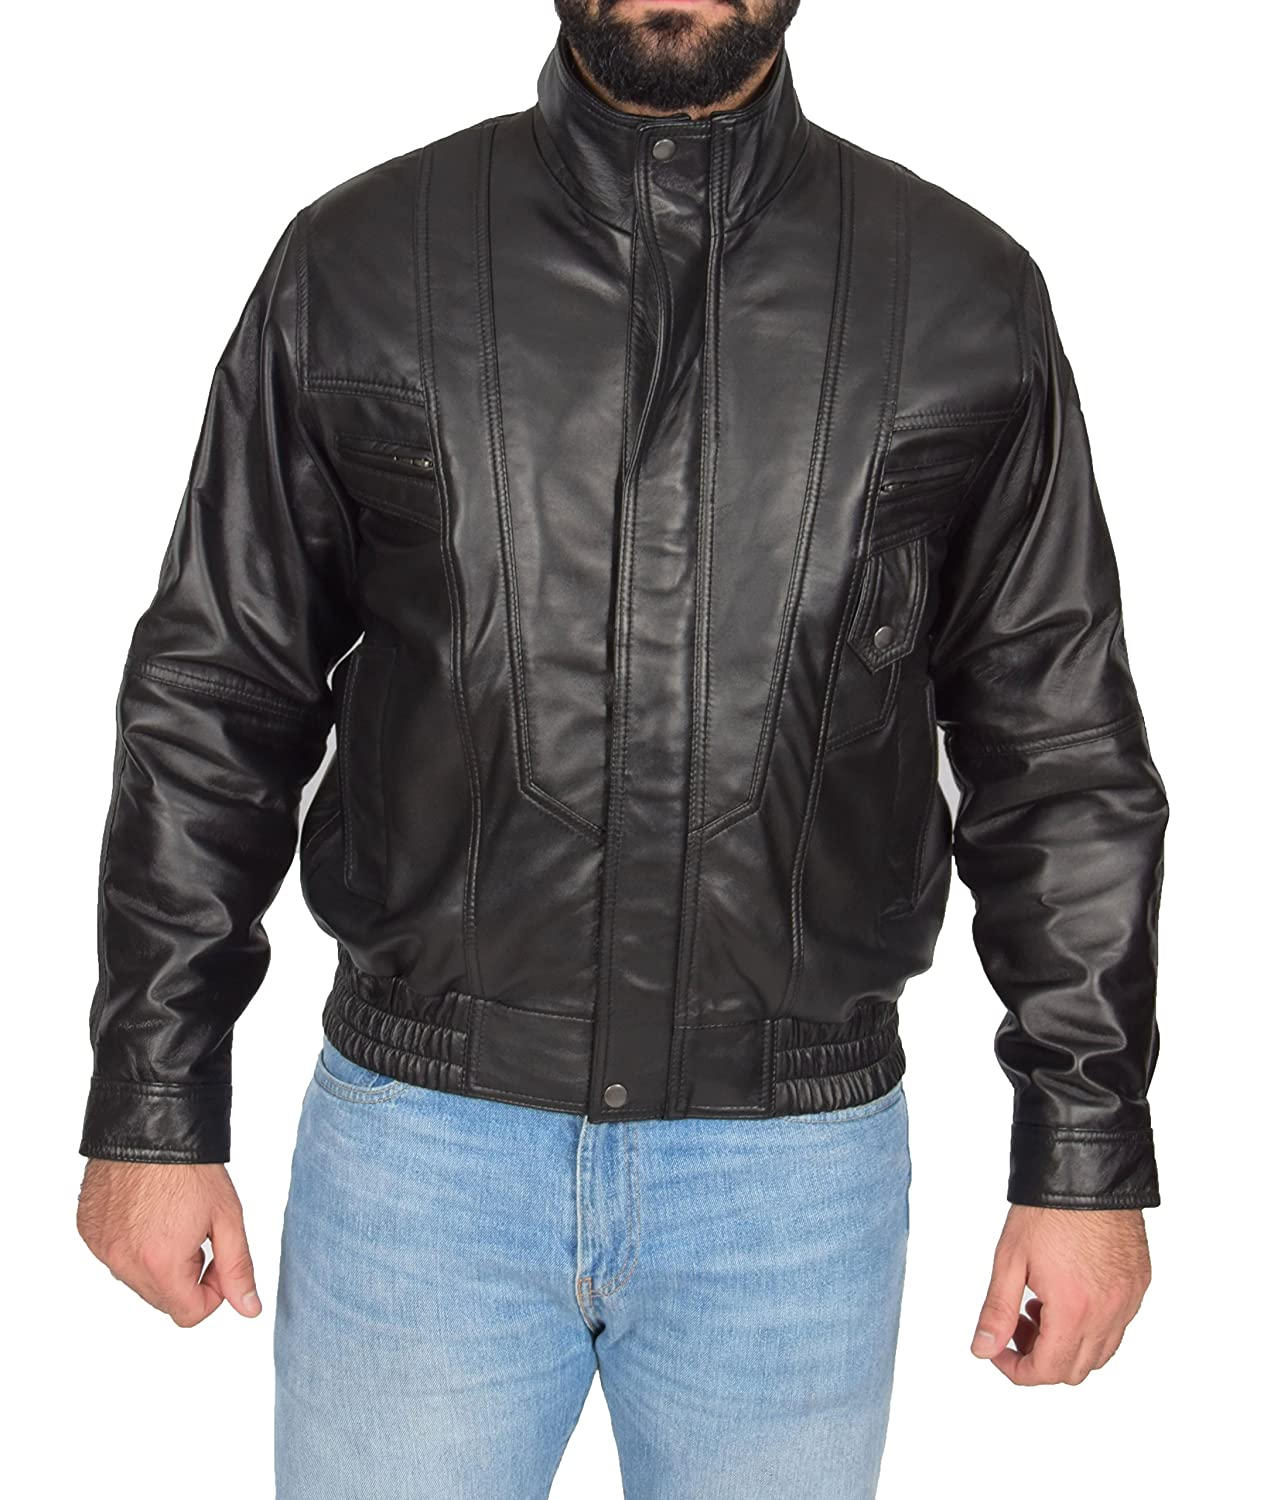 eb3508531 Mens Soft Leather Bomber Jacket Classic Fit Casual Blouson Style Robert  Black